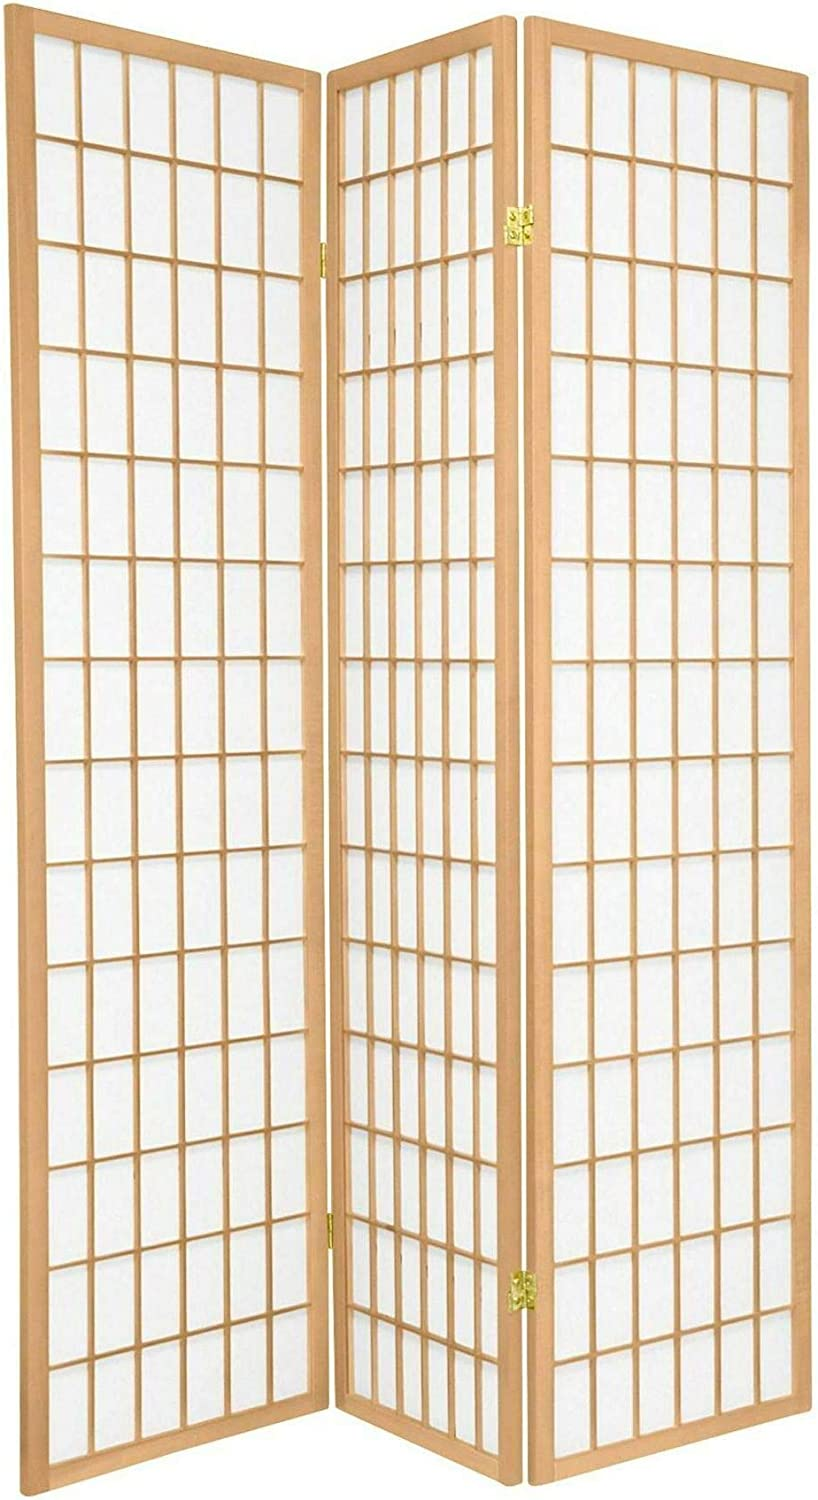 Legacy Decor Japanese Oriental Style Room Screen Divider, 3 Panels, Natural Color